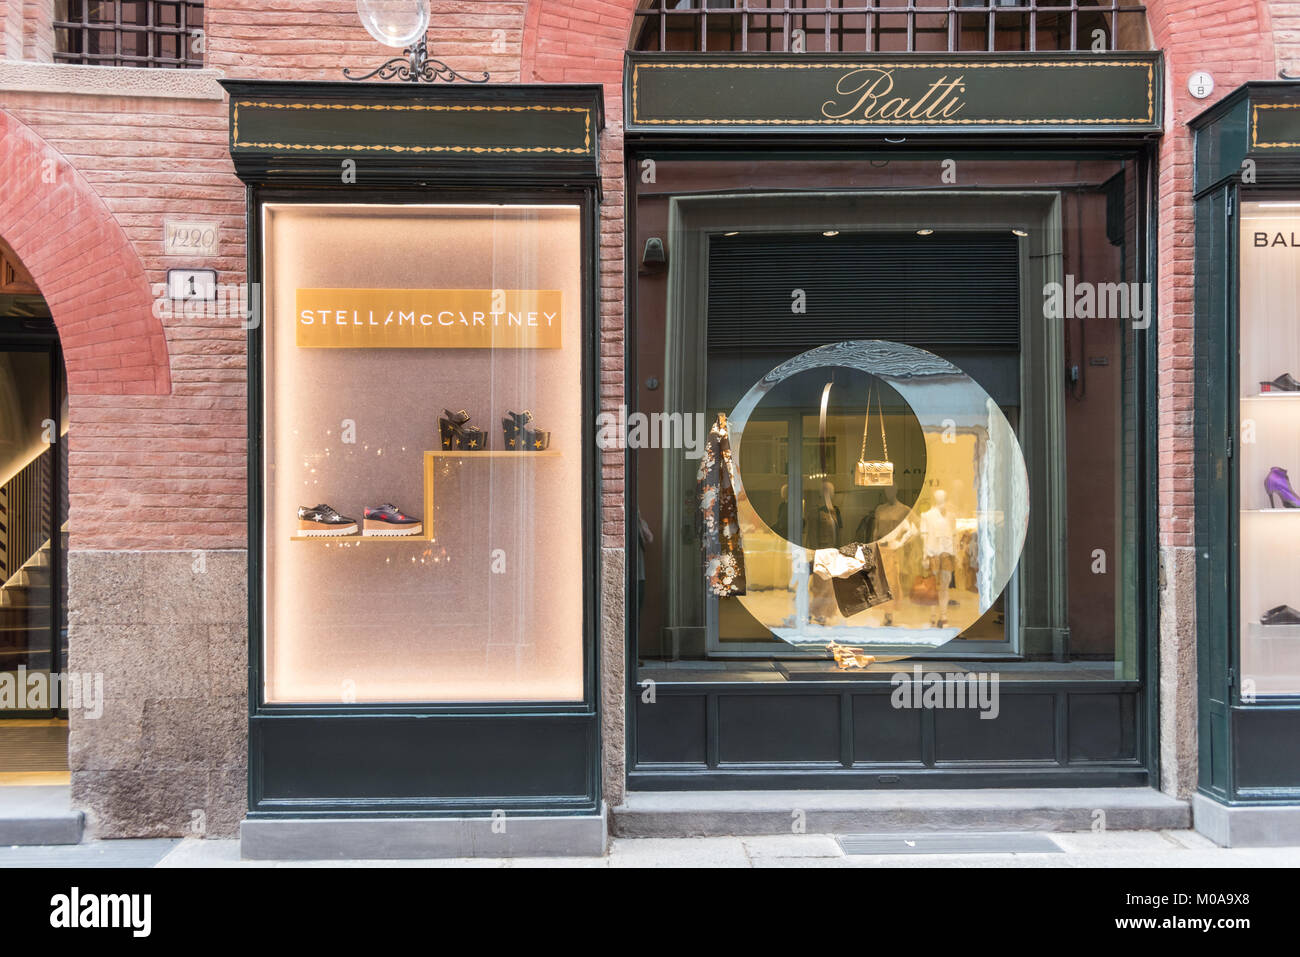 The Stella McCartney designer shop and shop window in Bologna Italy - Stock Image